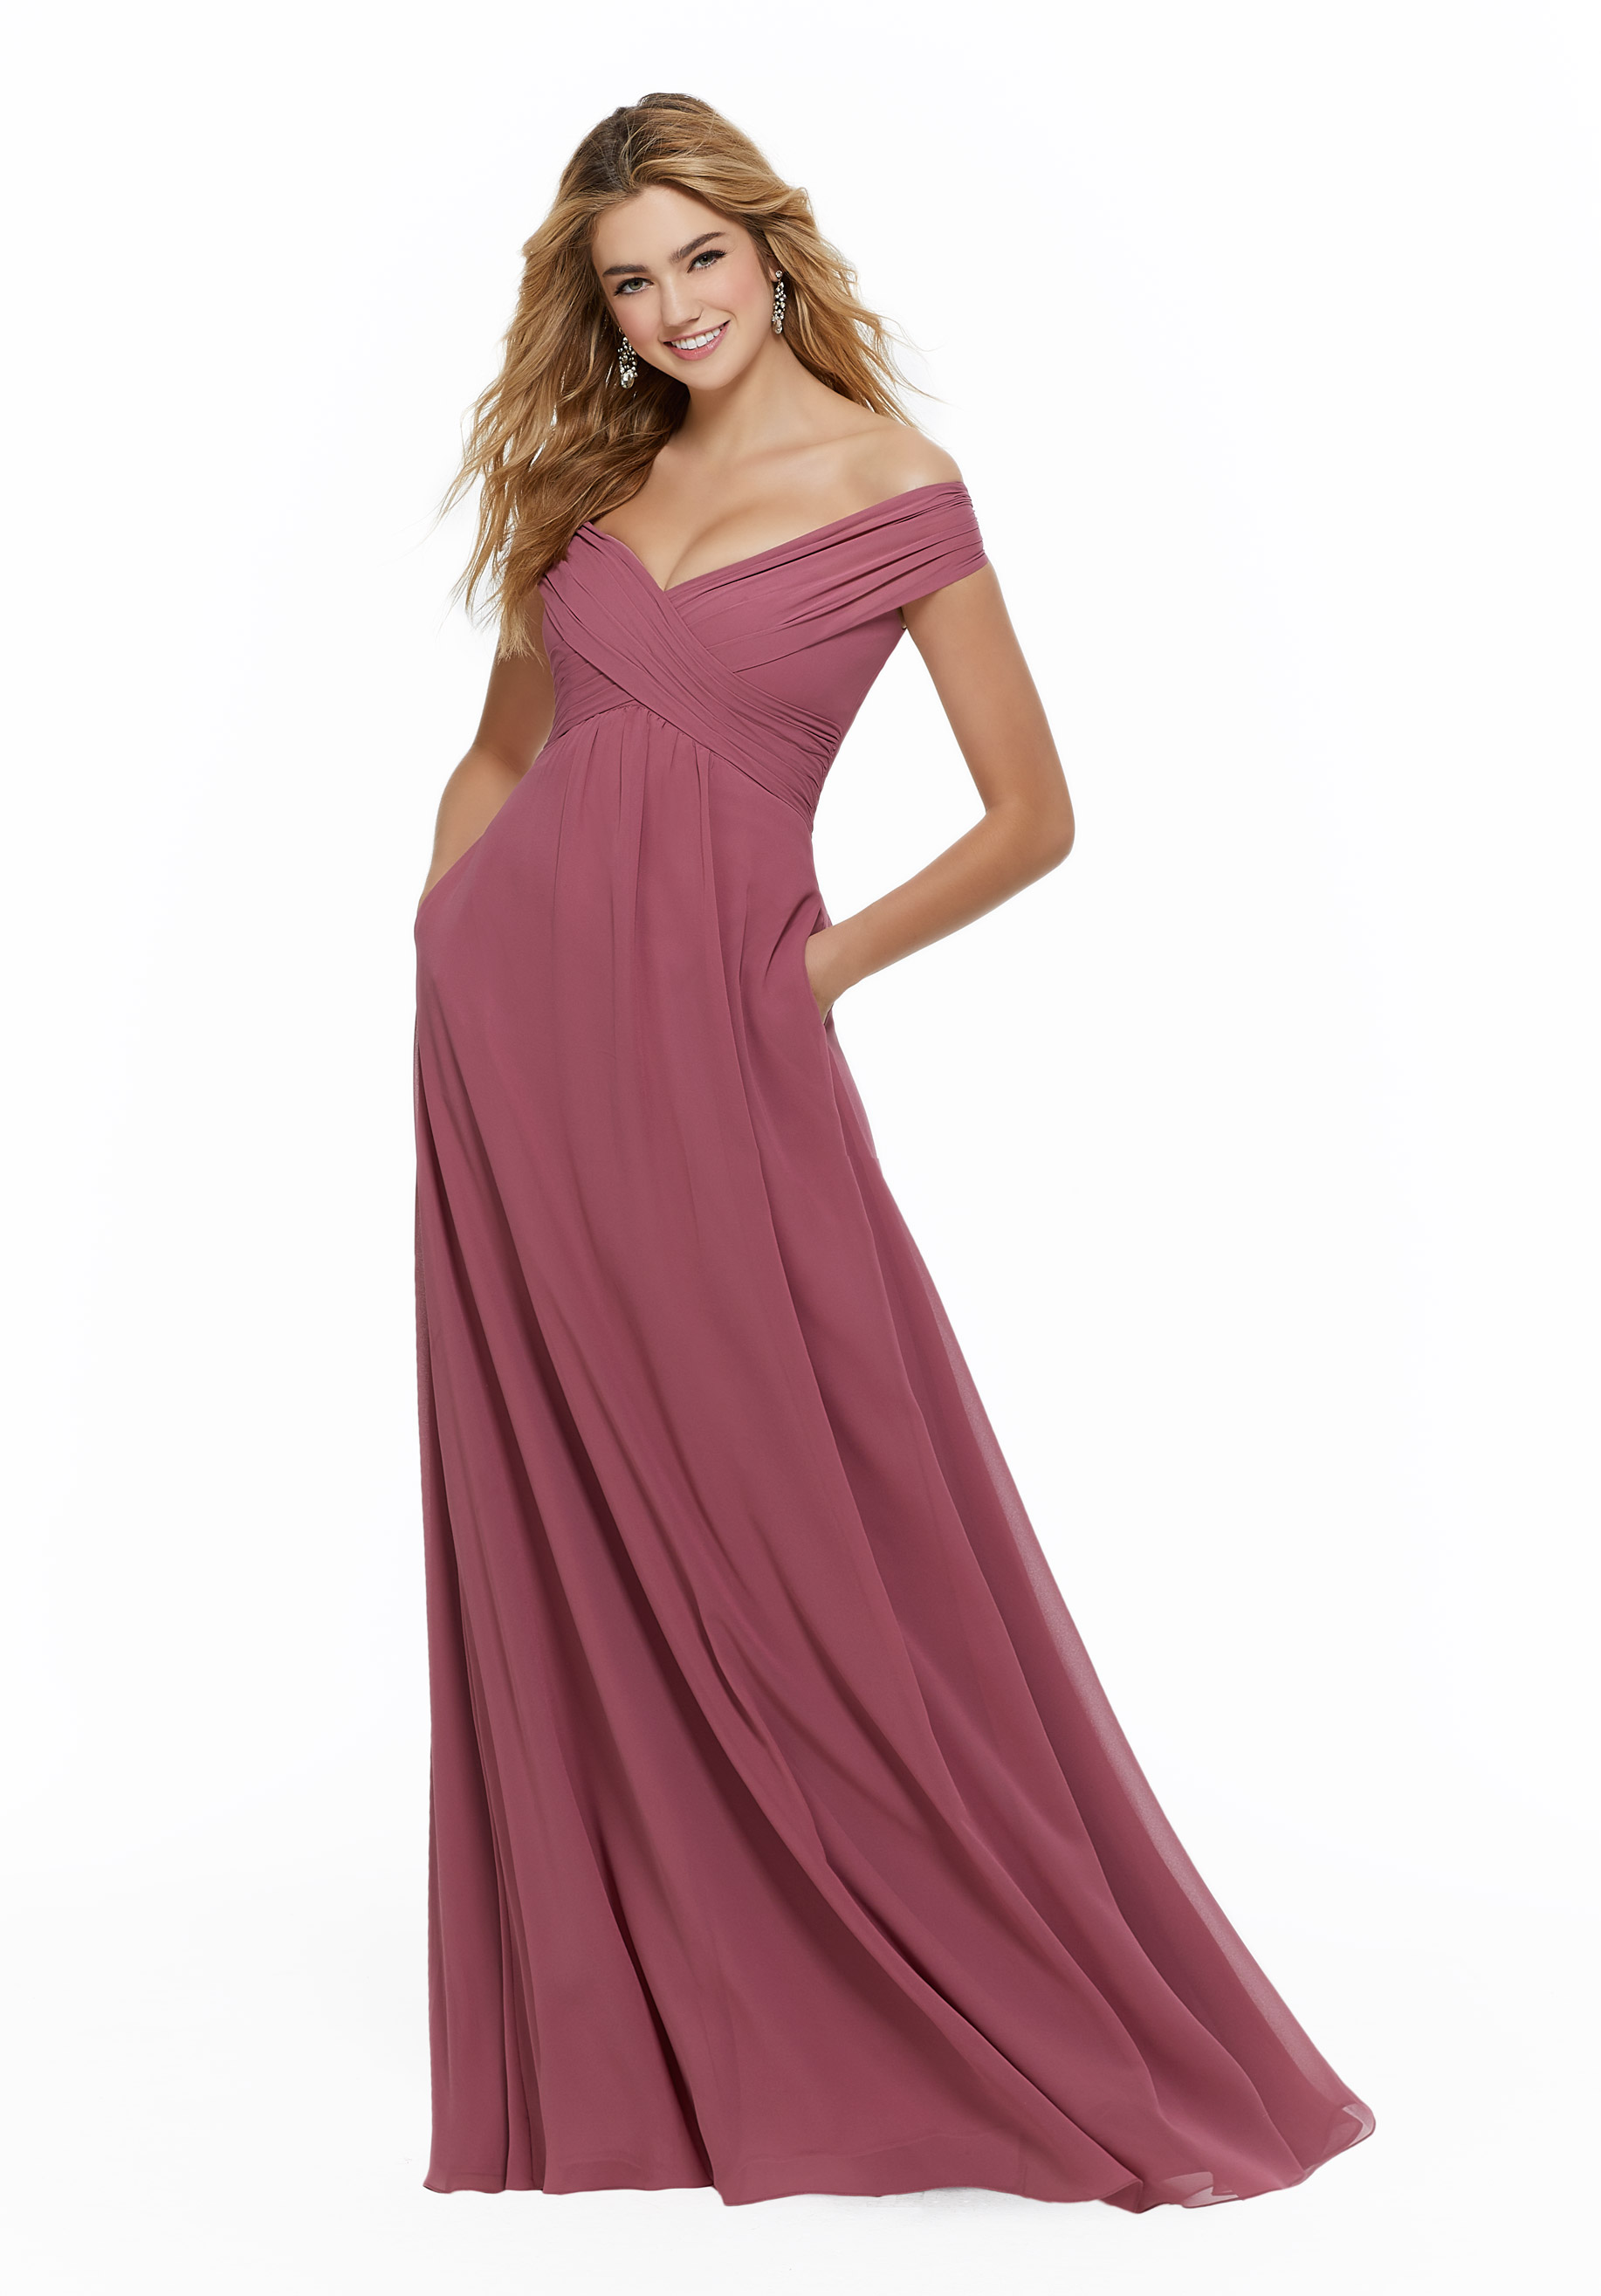 Chiffon  Dress with Classic Off the Shoulder Neckline, Morilee by Madeline Gardner, Style 21646